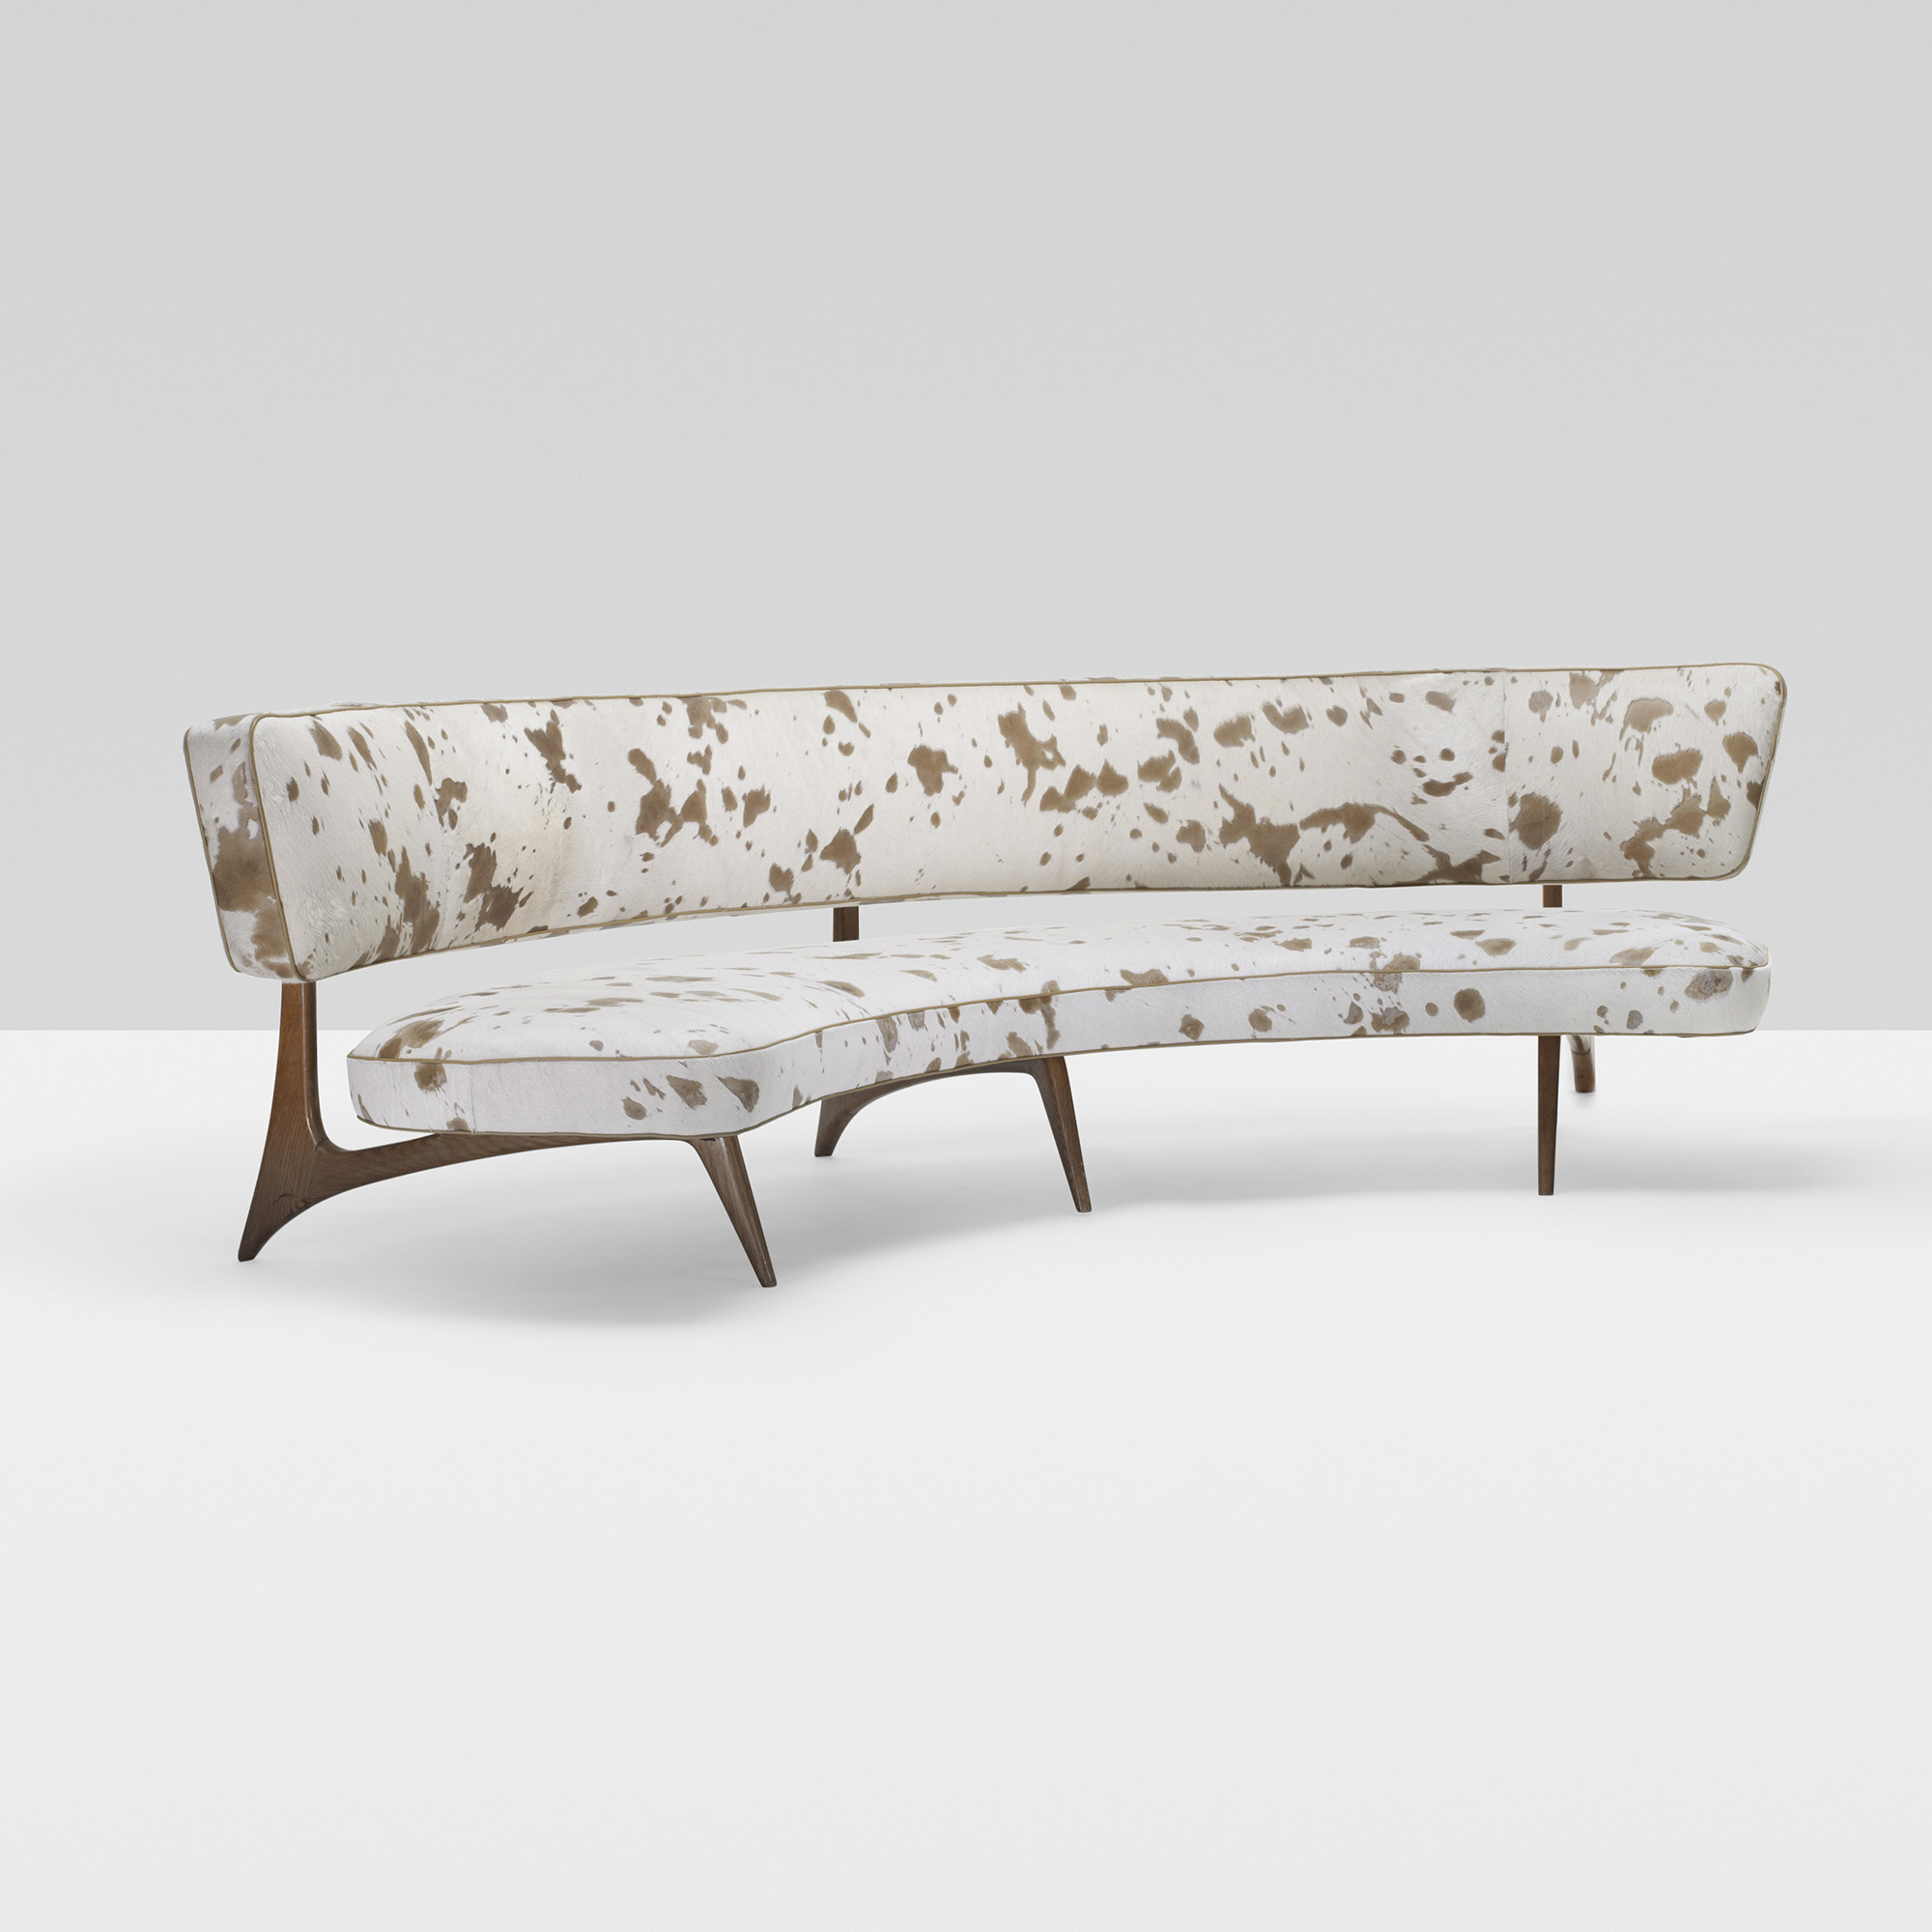 Superbe 397: Vladimir Kagan / Floating Curve Sofa (1 Of 4)